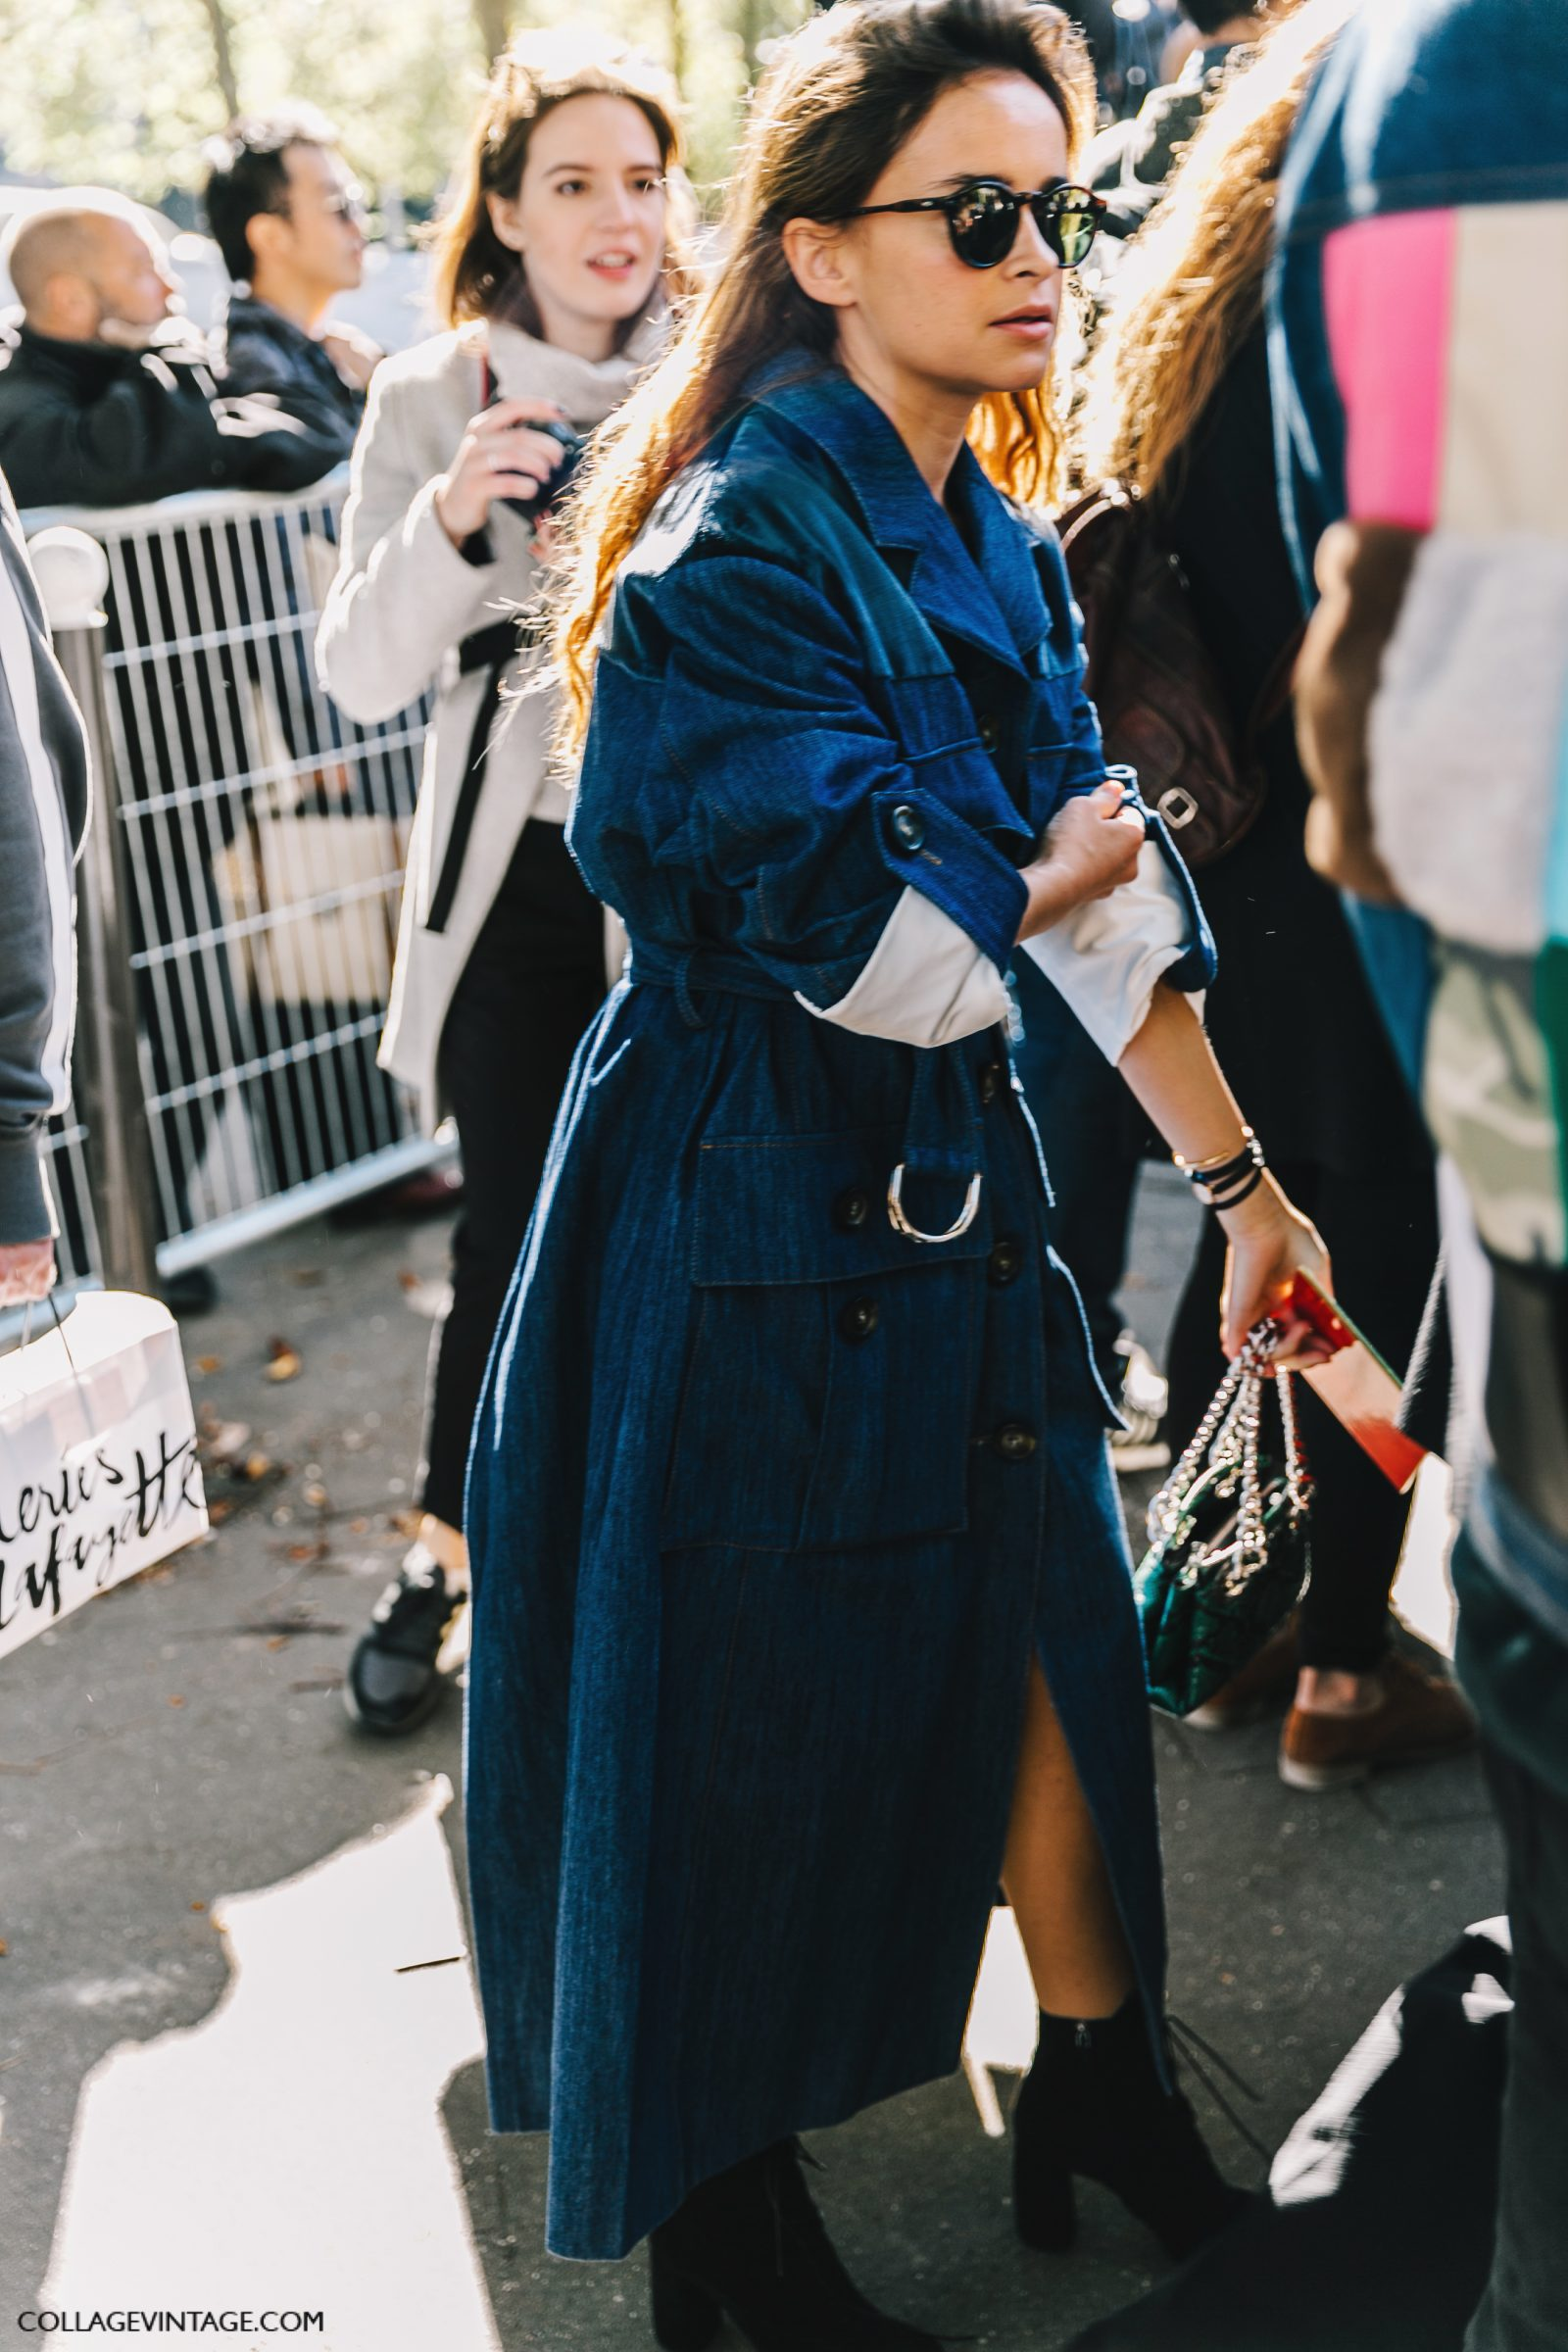 pfw-paris_fashion_week_ss17-street_style-outfit-collage_vintage-louis_vuitton-miu_miu-62